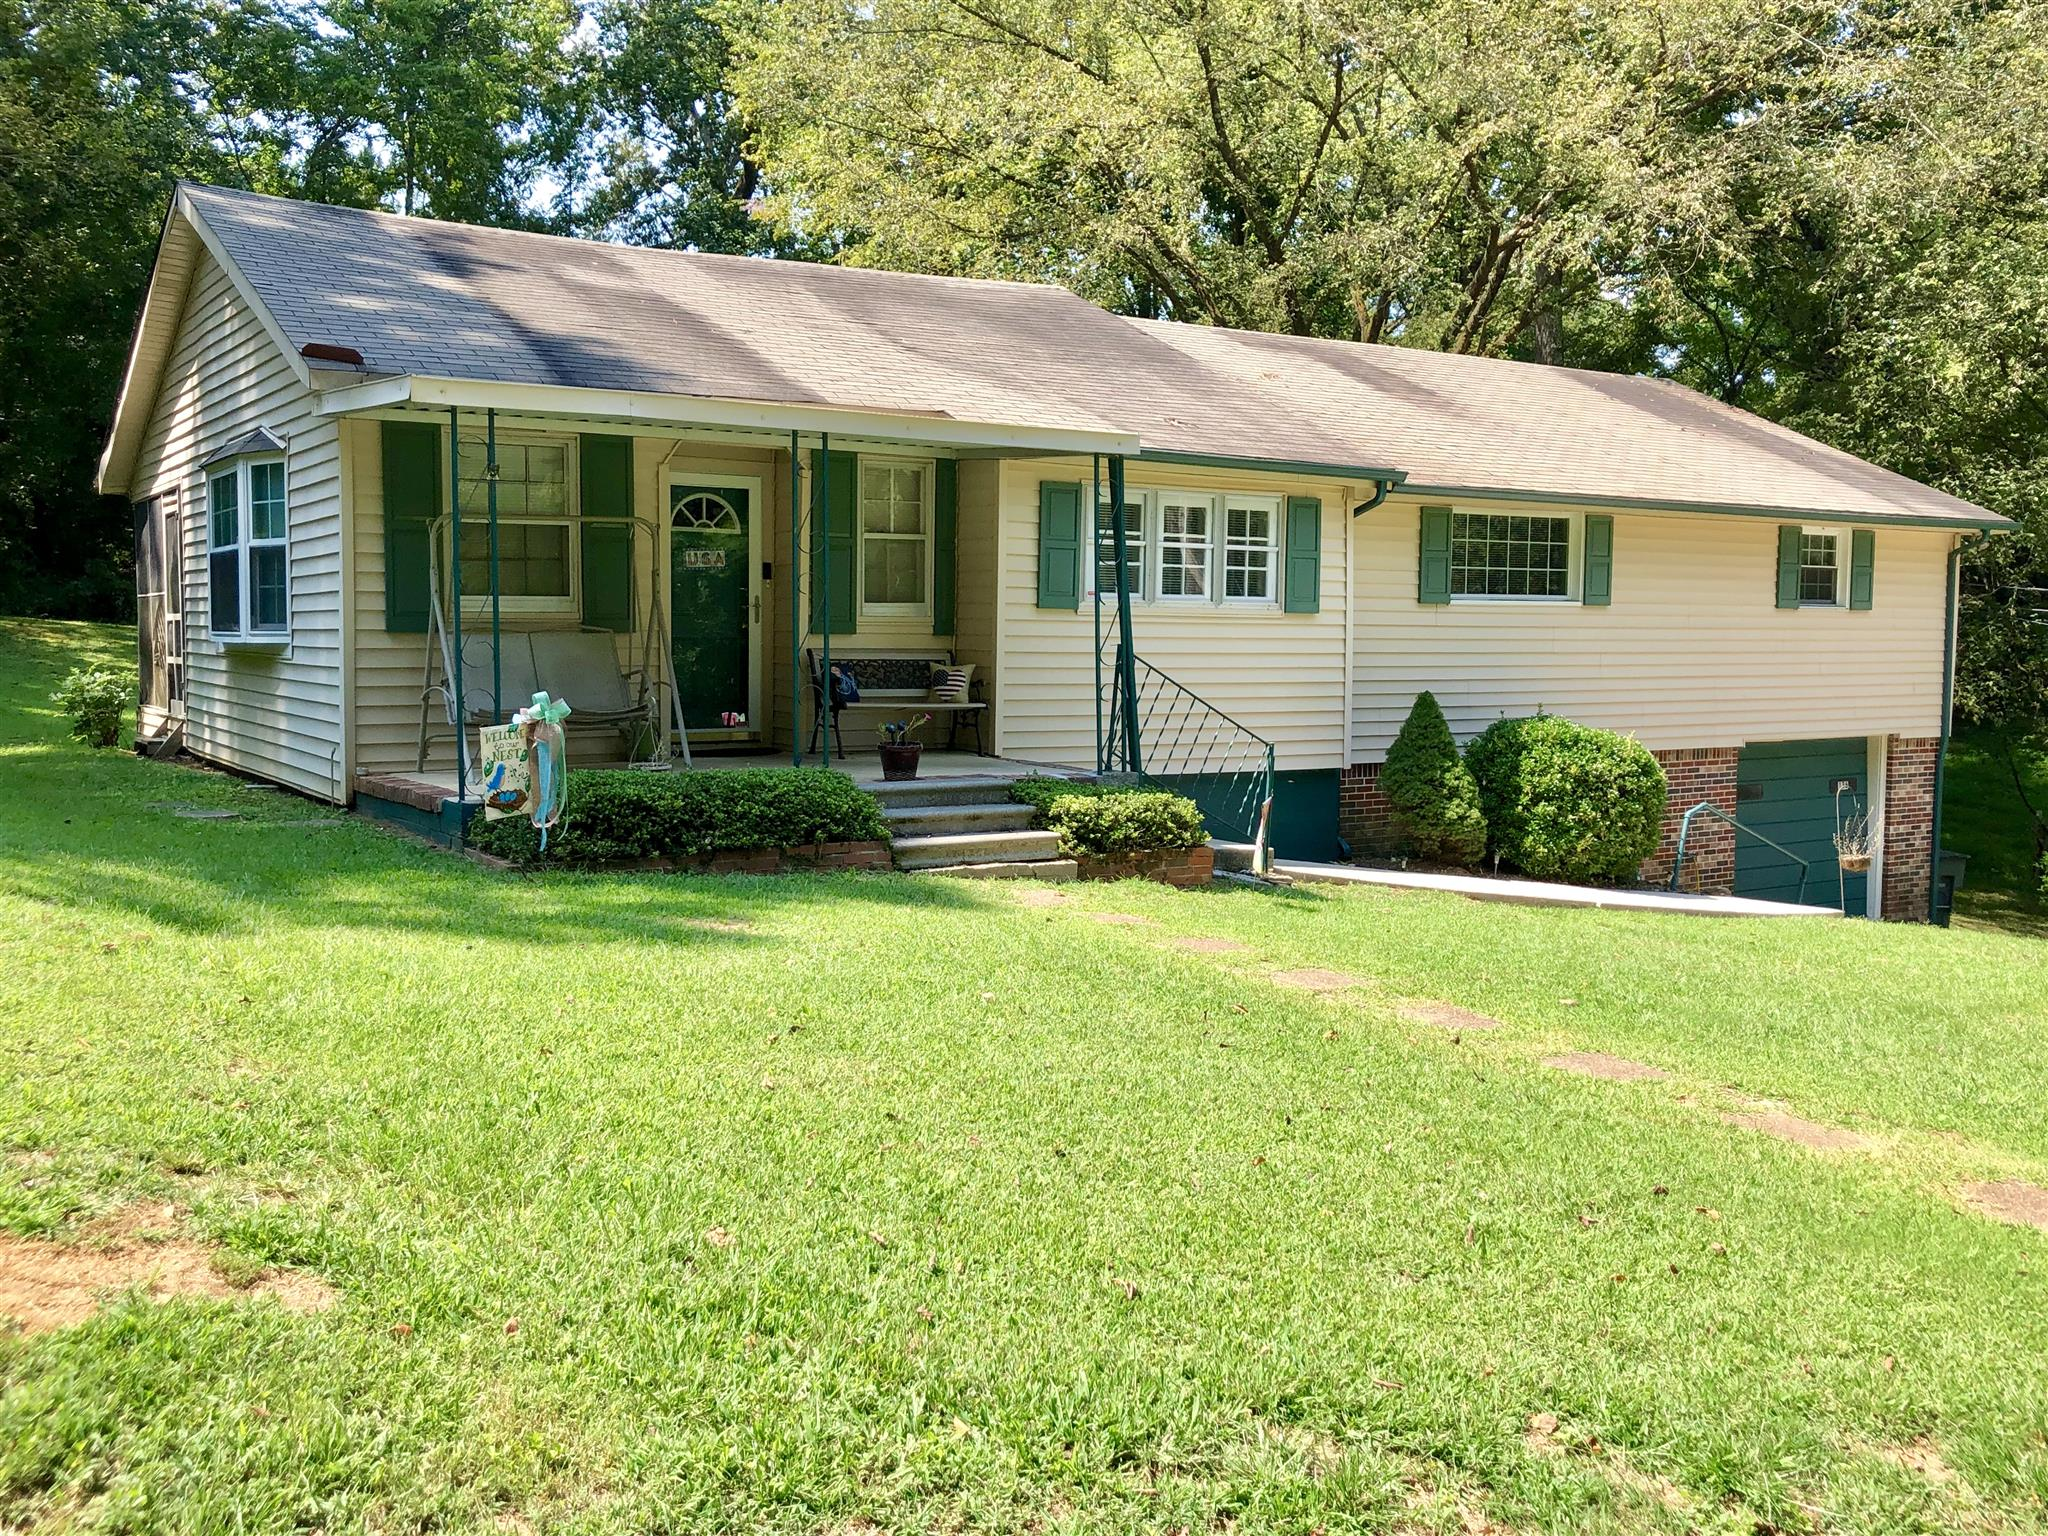 136 Rivercliff Rd, McMinnville, TN 37110 - McMinnville, TN real estate listing